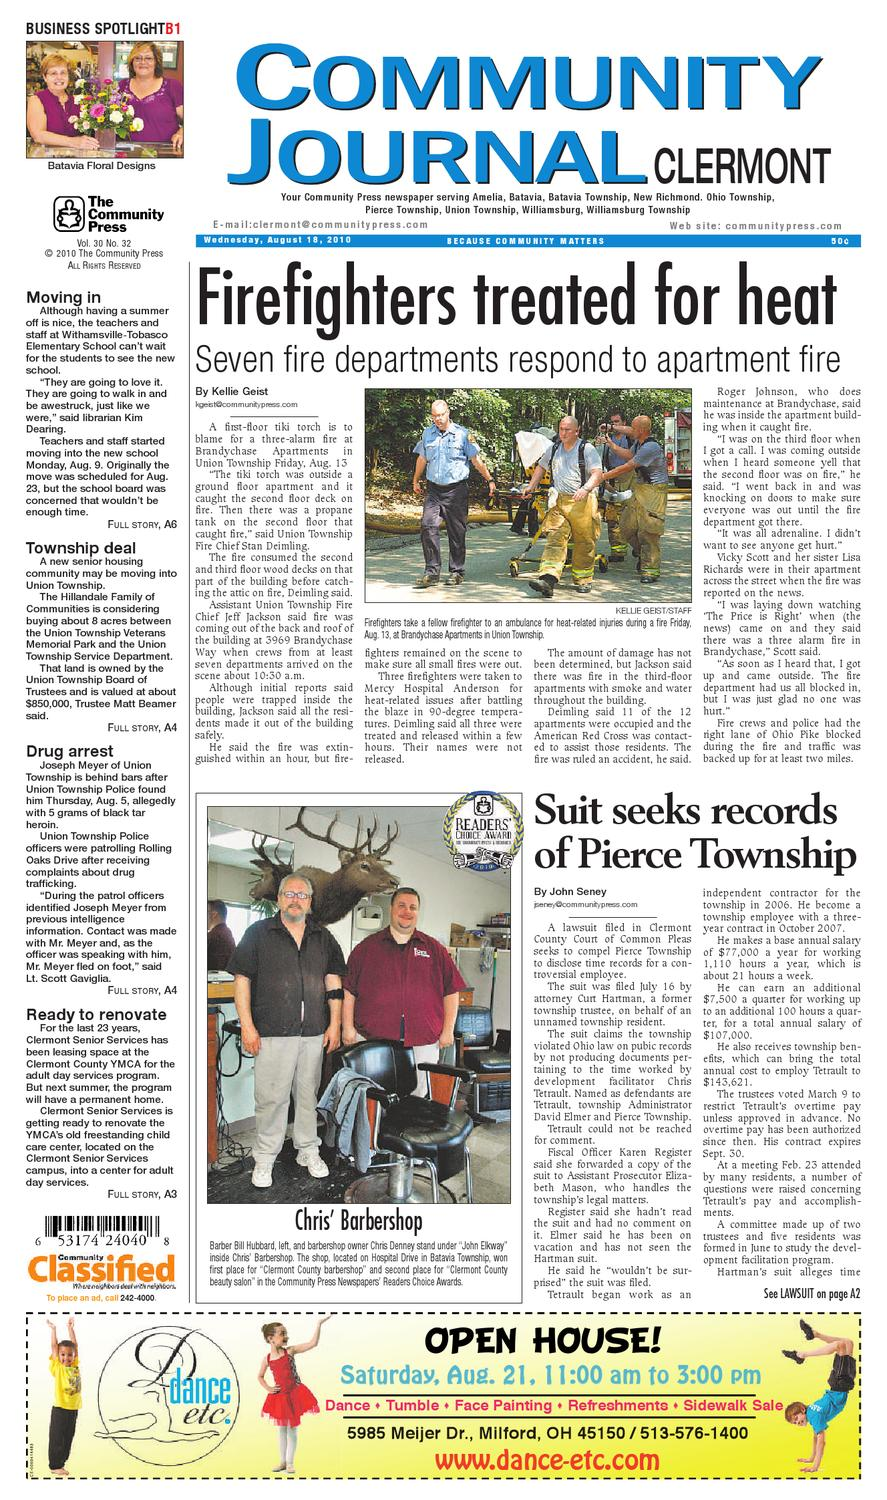 community-journal-clermont-081810 by Enquirer Media - issuu 6766b7984d